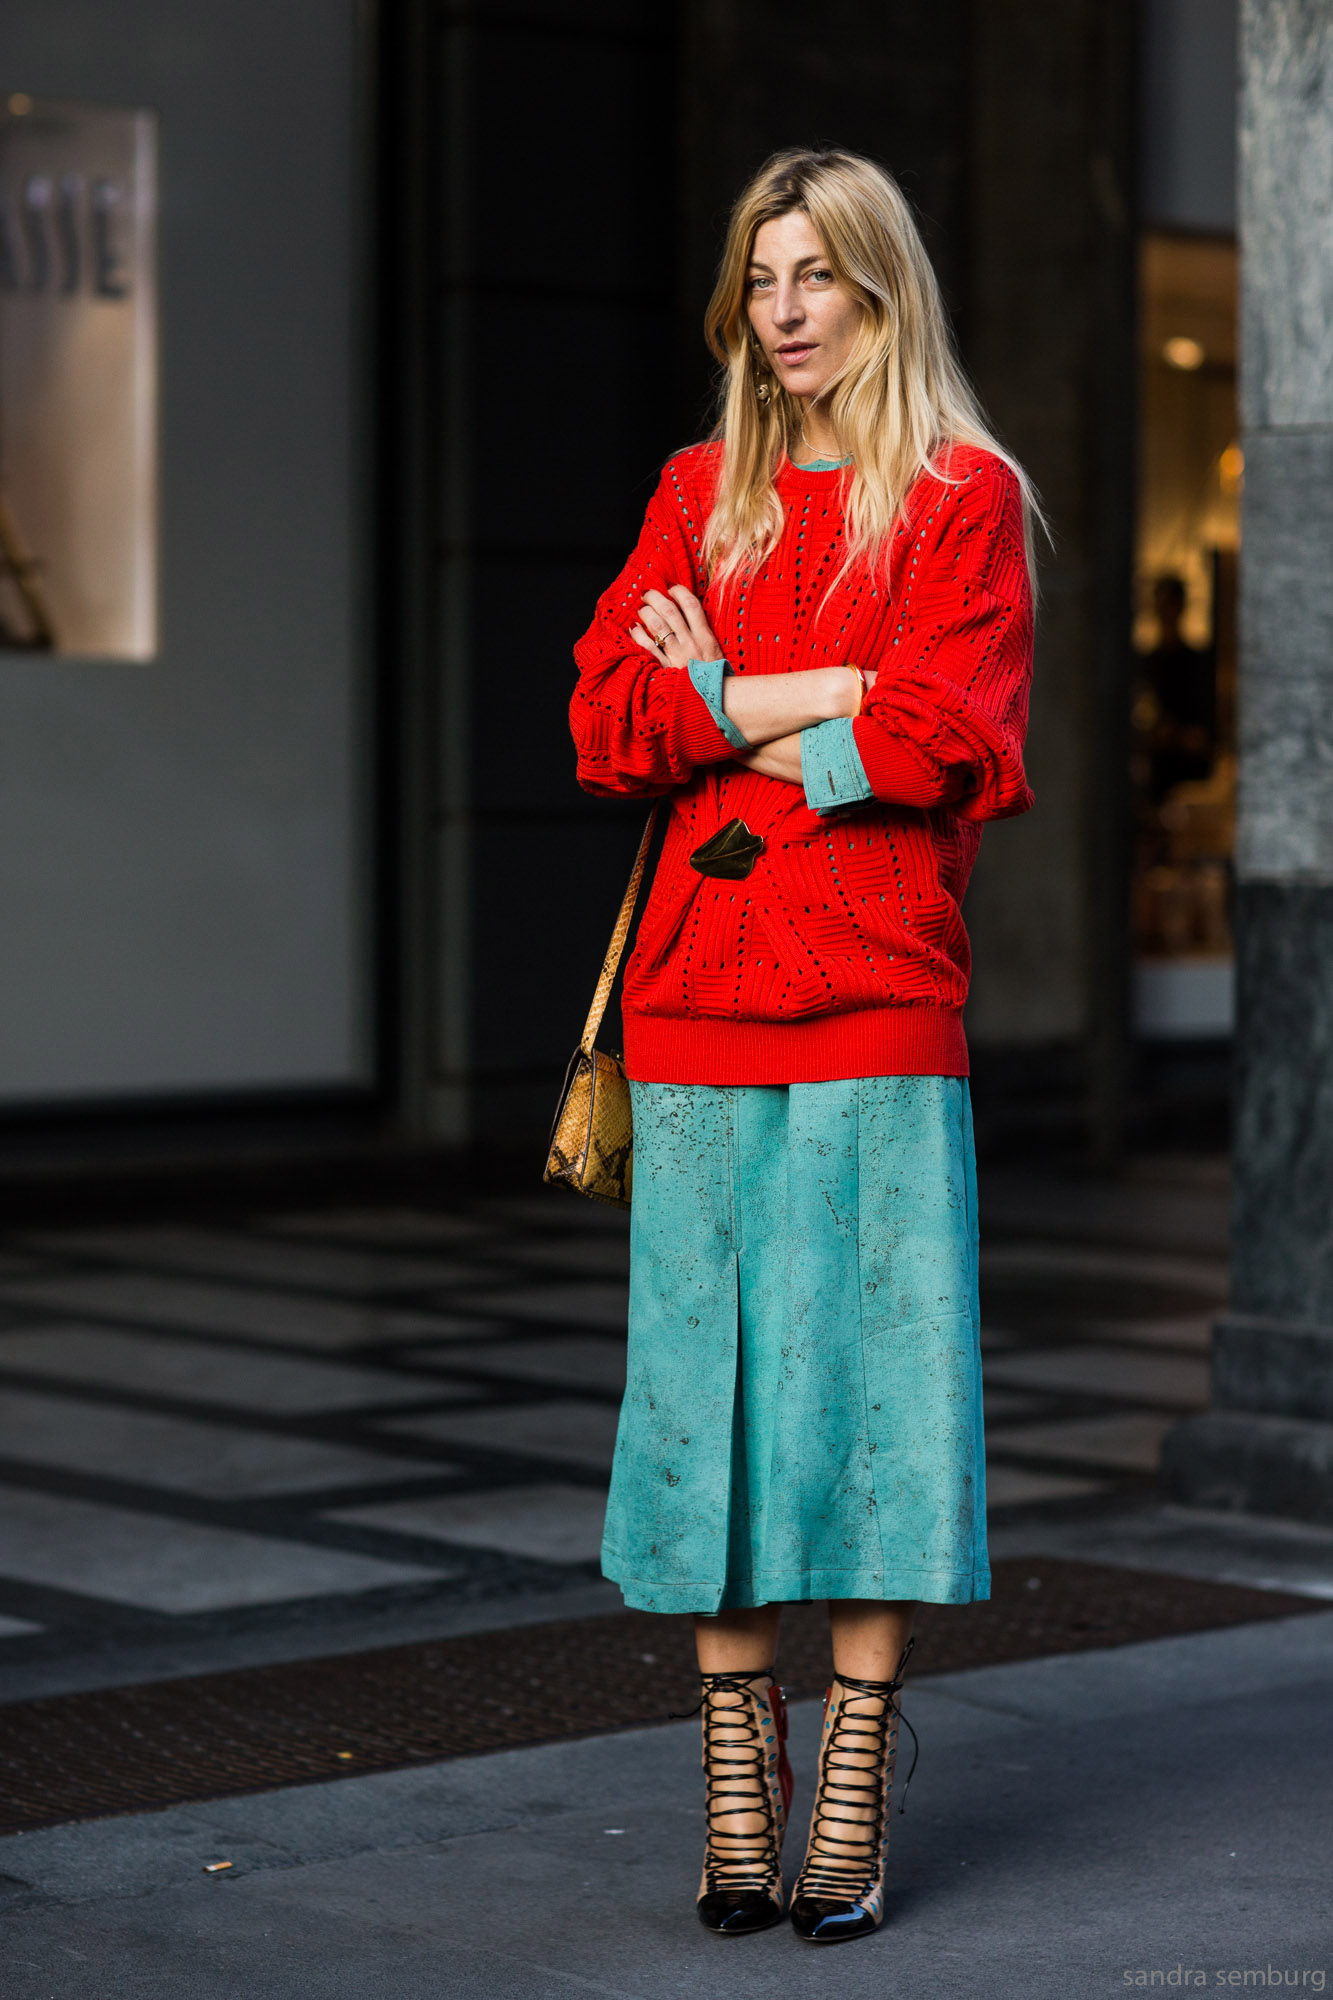 MilanFw_SS2016_day4_sandrasemburg-20150926-8329